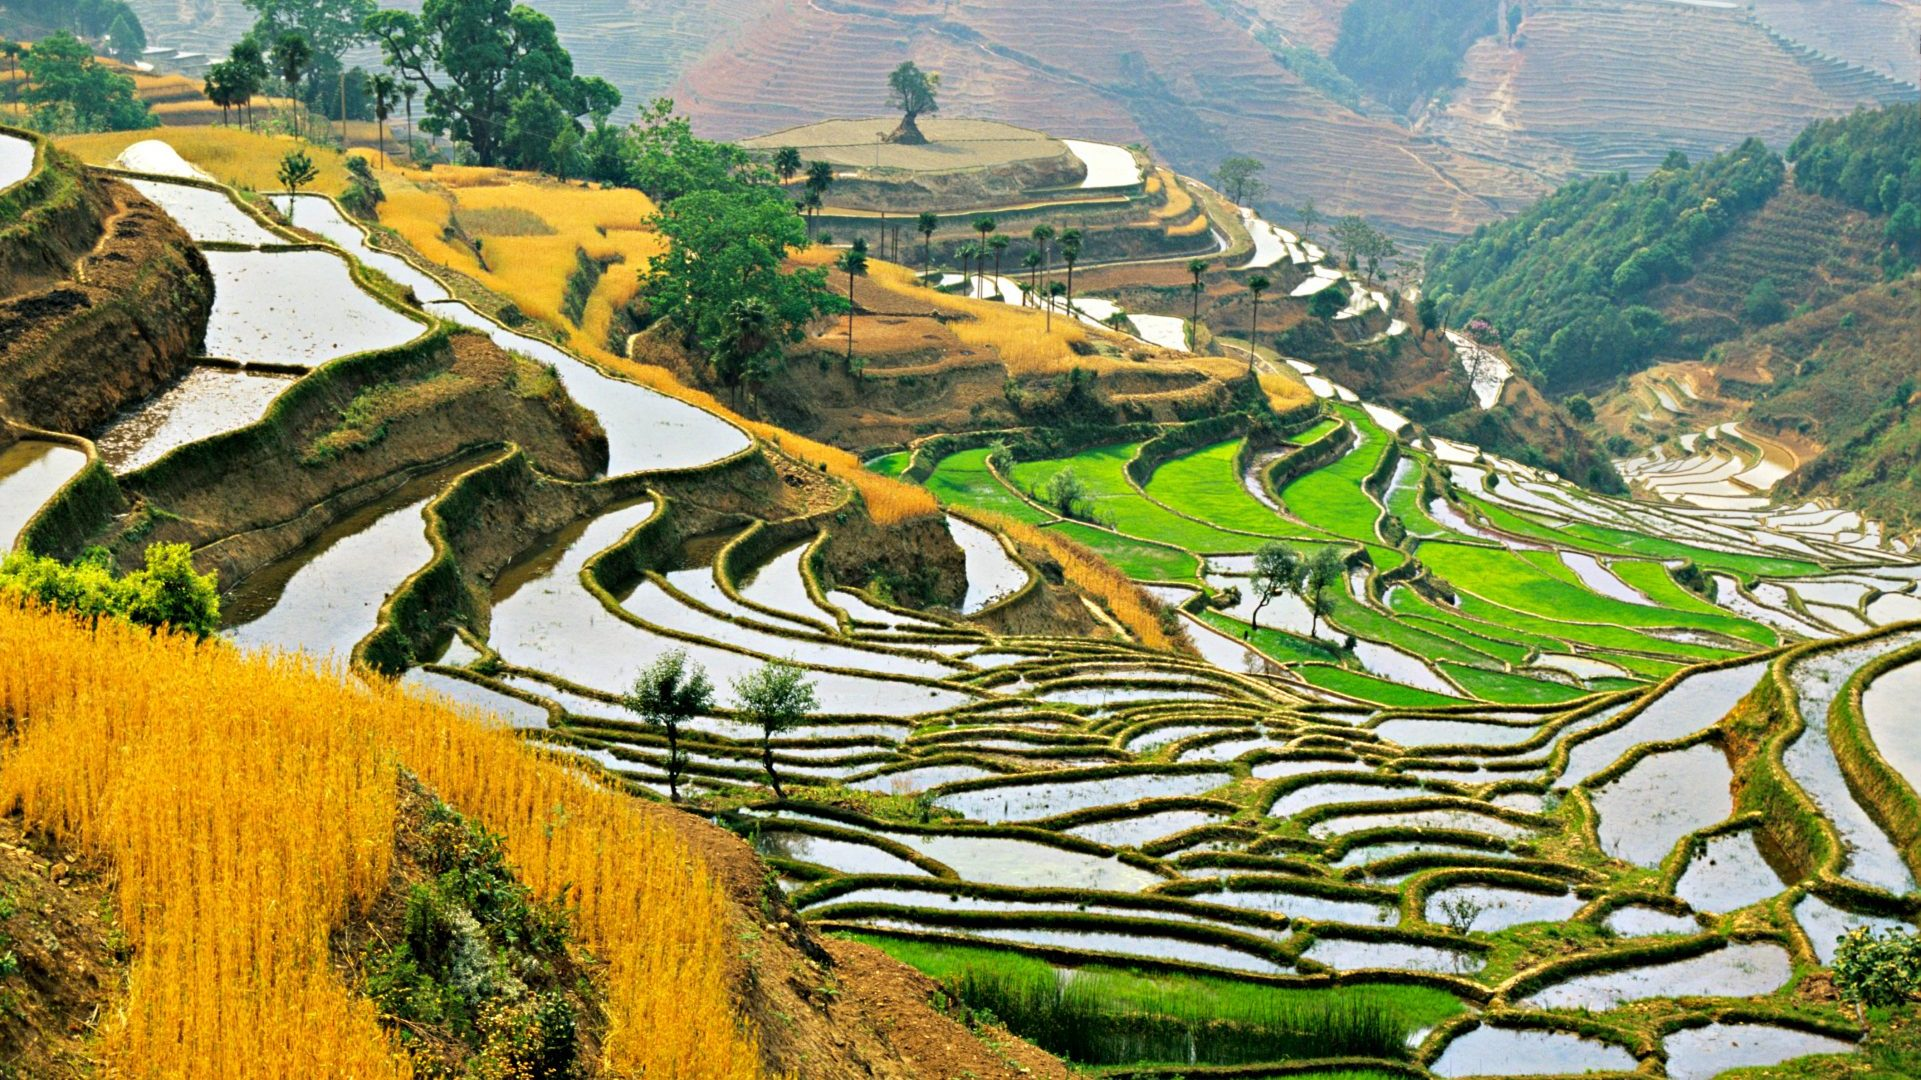 Green and gold fields of autumn in Hani people's Cloudy Sea Terrace, in Yunnan, China, with GeoEx